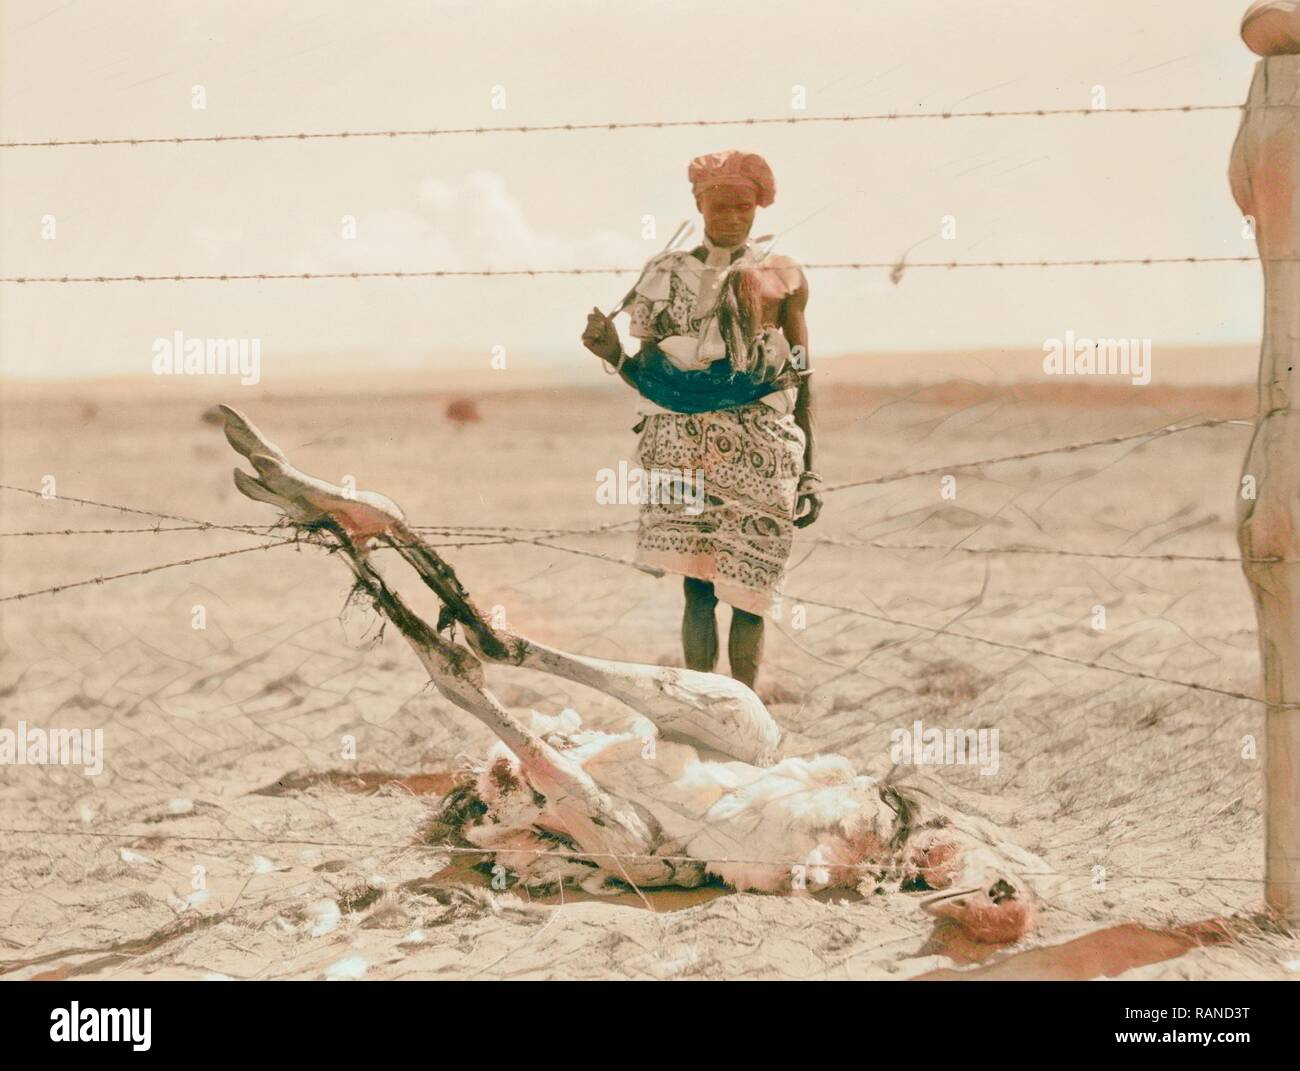 Kenya Colony. Rift Valley and en route to Nairobi. Ostrich succumbed by entanglement in barbed wire. 1936, Kenya reimagined - Stock Image